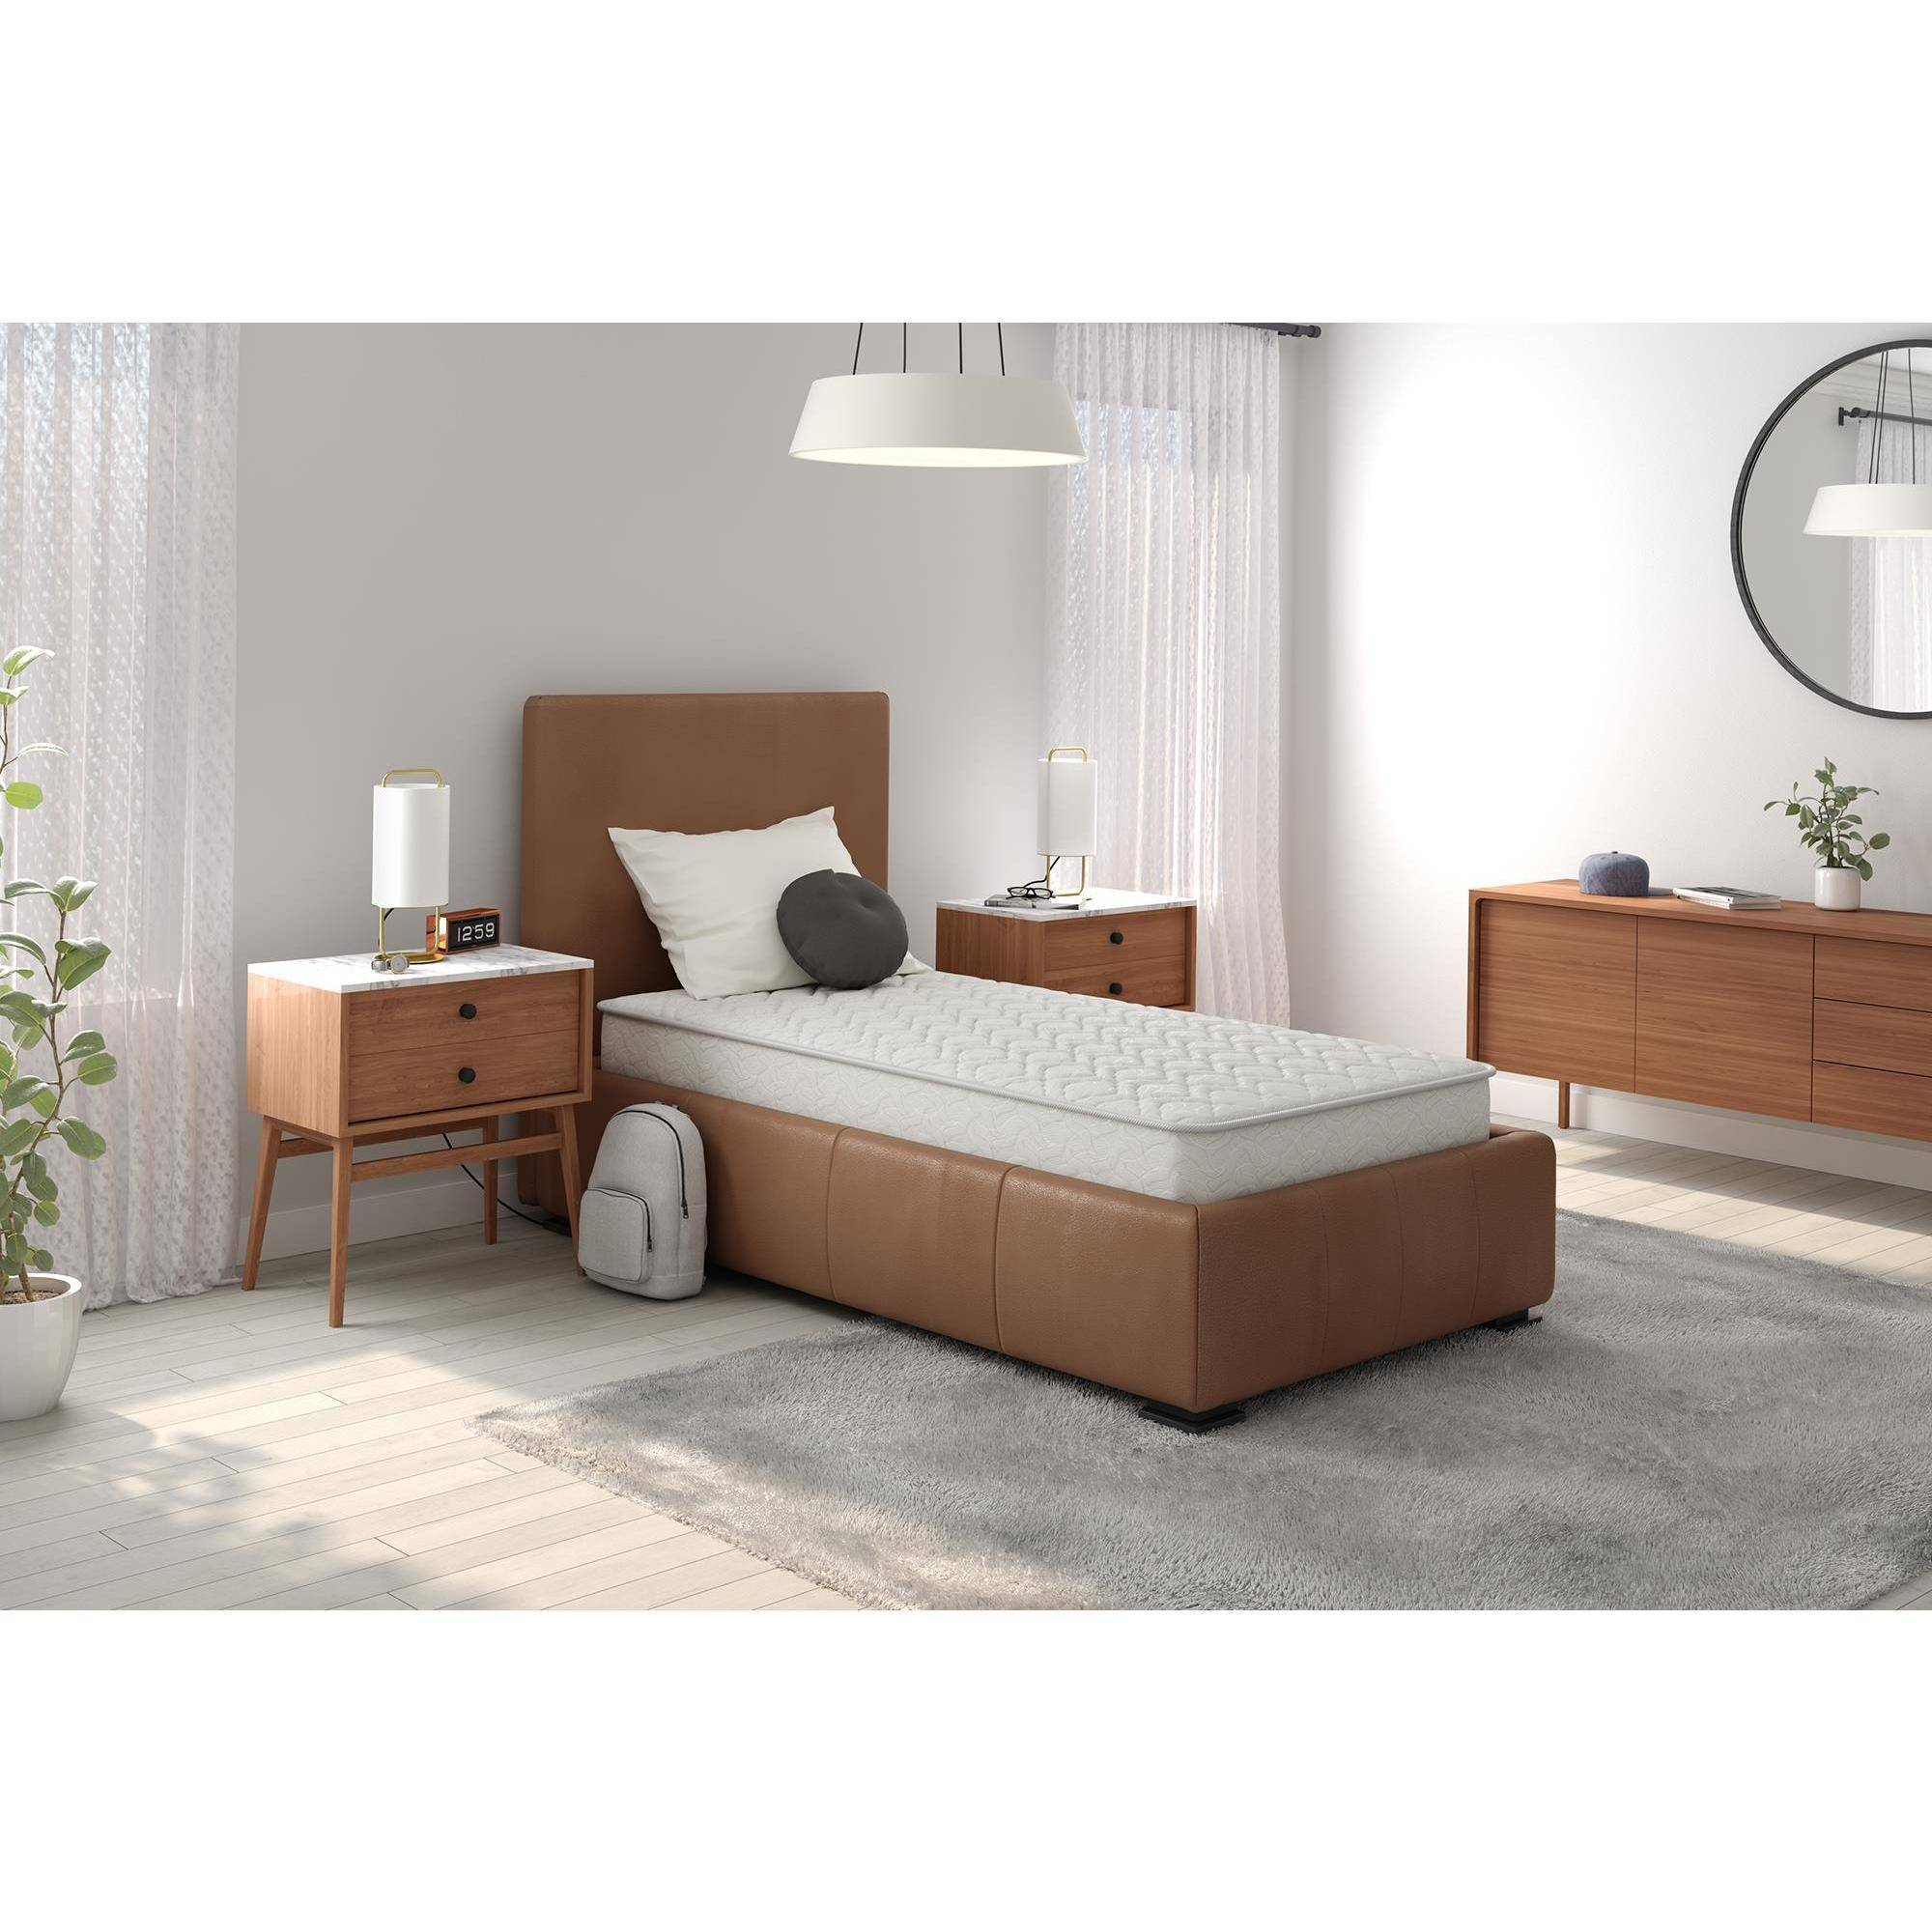 "Signature Sleep Gold CertiPUR-US Triumph 8"" Independently Encased Coil Mattress, Multiple Sizes"